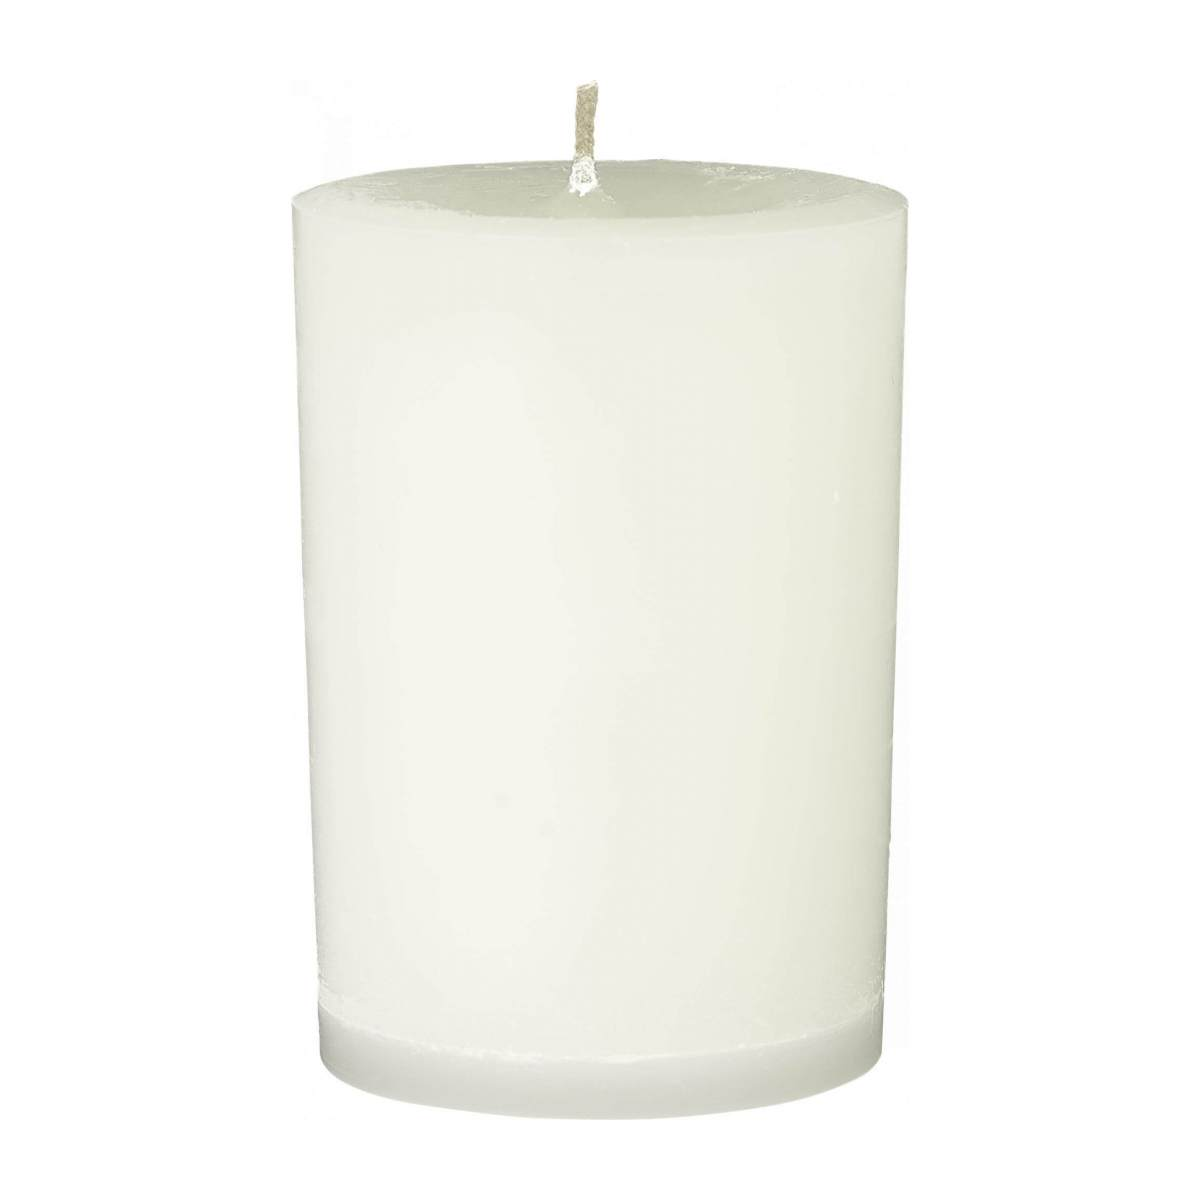 Refill for 2 medium Palais scented candles, 2 x 300g n°2